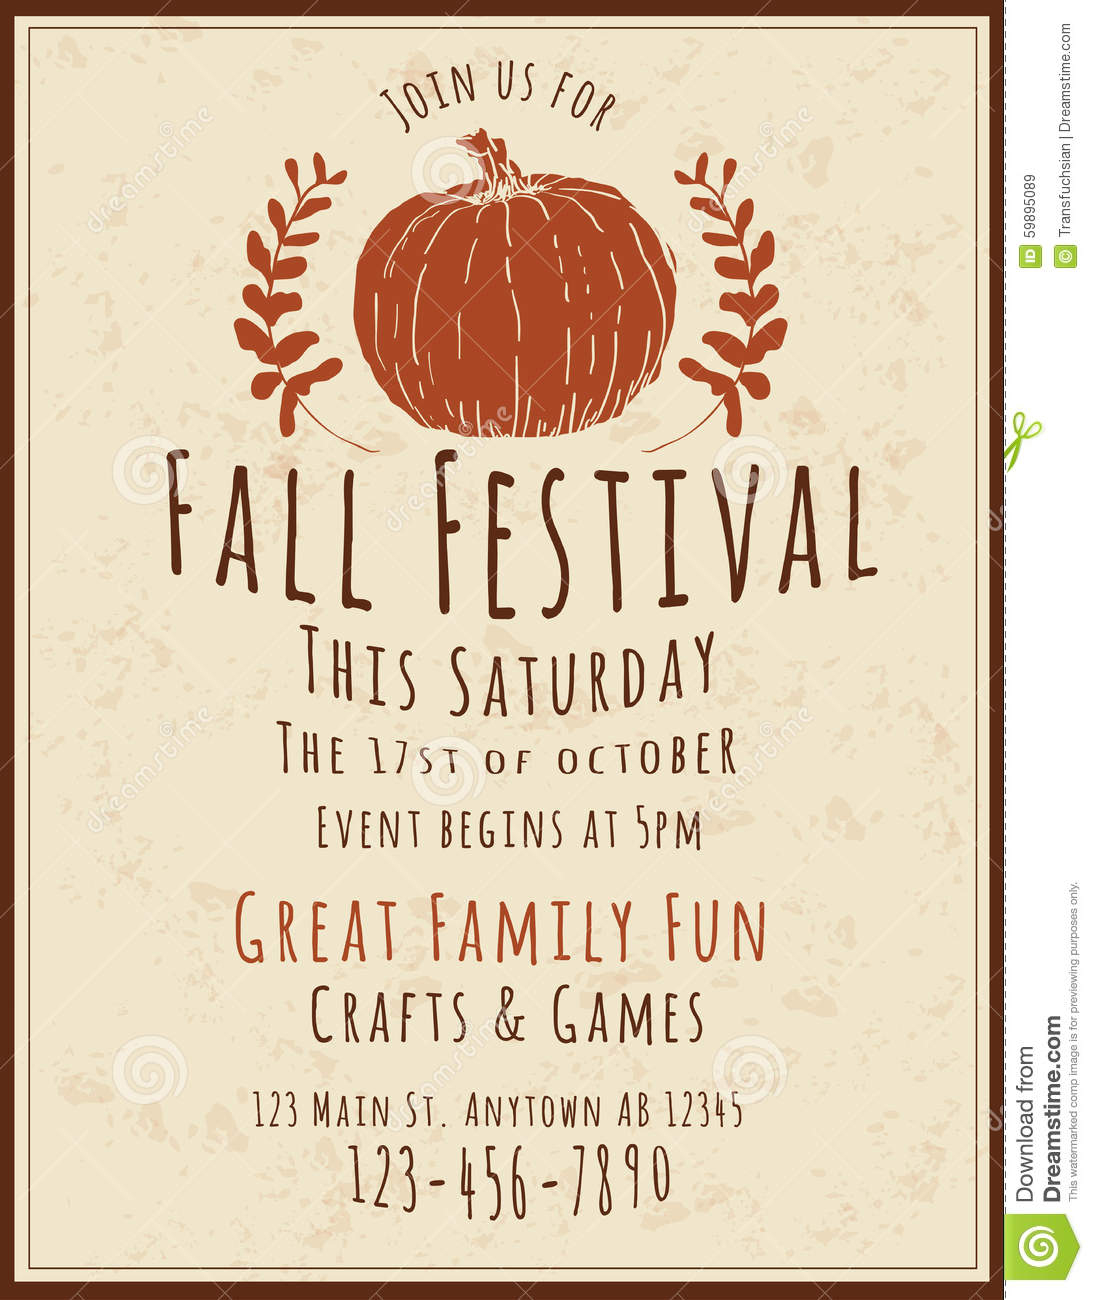 025 Event Flyer Template Free Ideas Fall Festival Simple Retro Hand - Free Printable Fall Flyer Templates